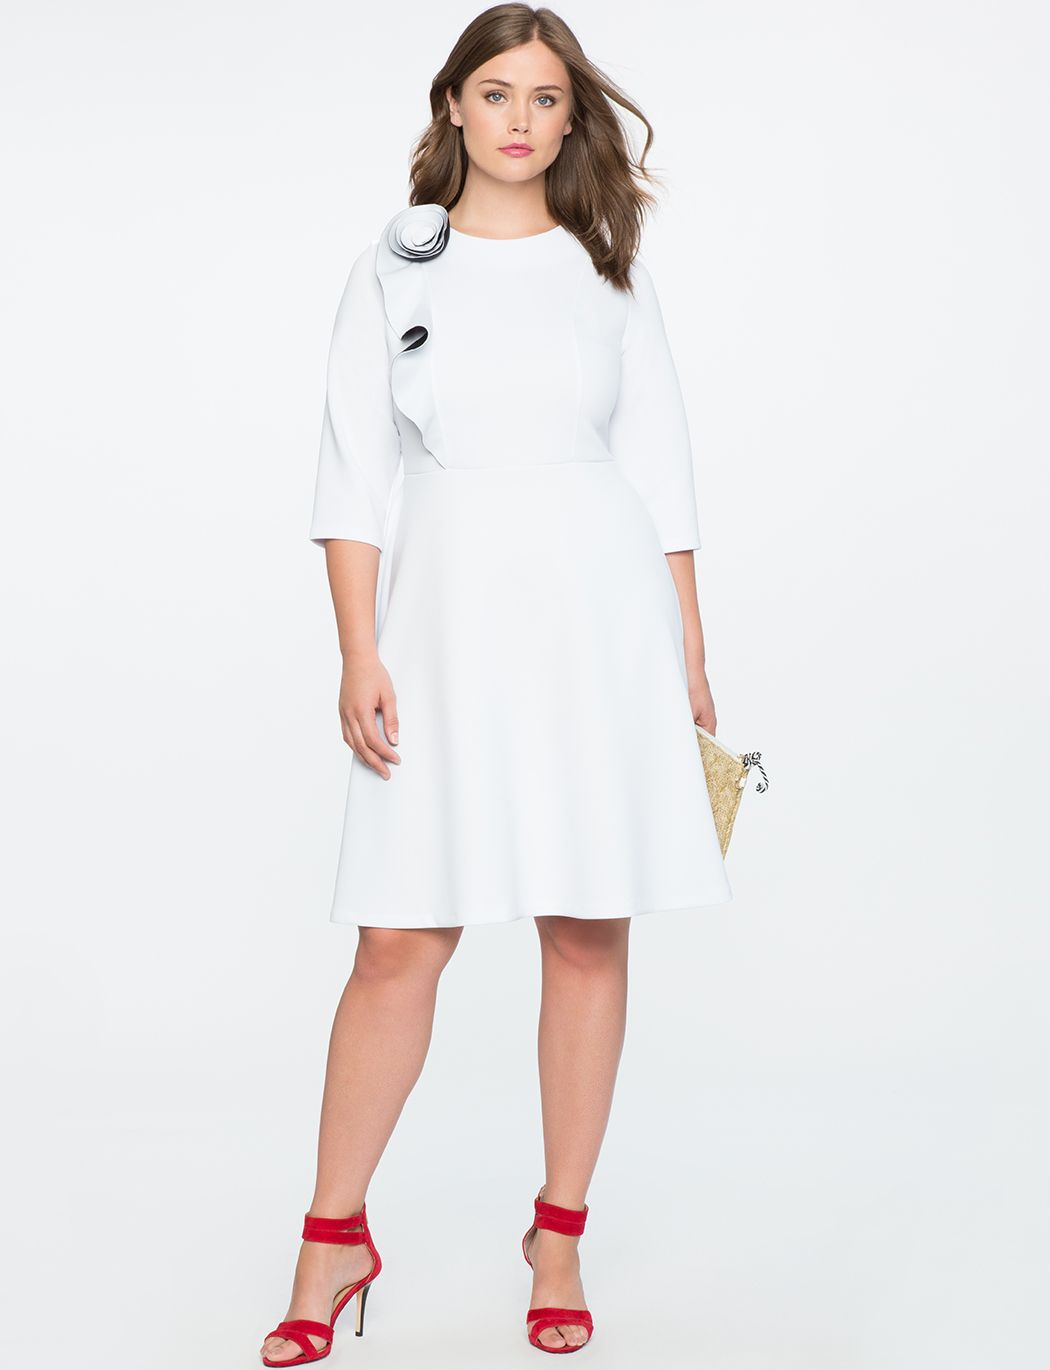 Rosette Fit And Flare Dress White Fit And Flare Dress Plus Size Dresses Womens Dresses [ 1370 x 1050 Pixel ]